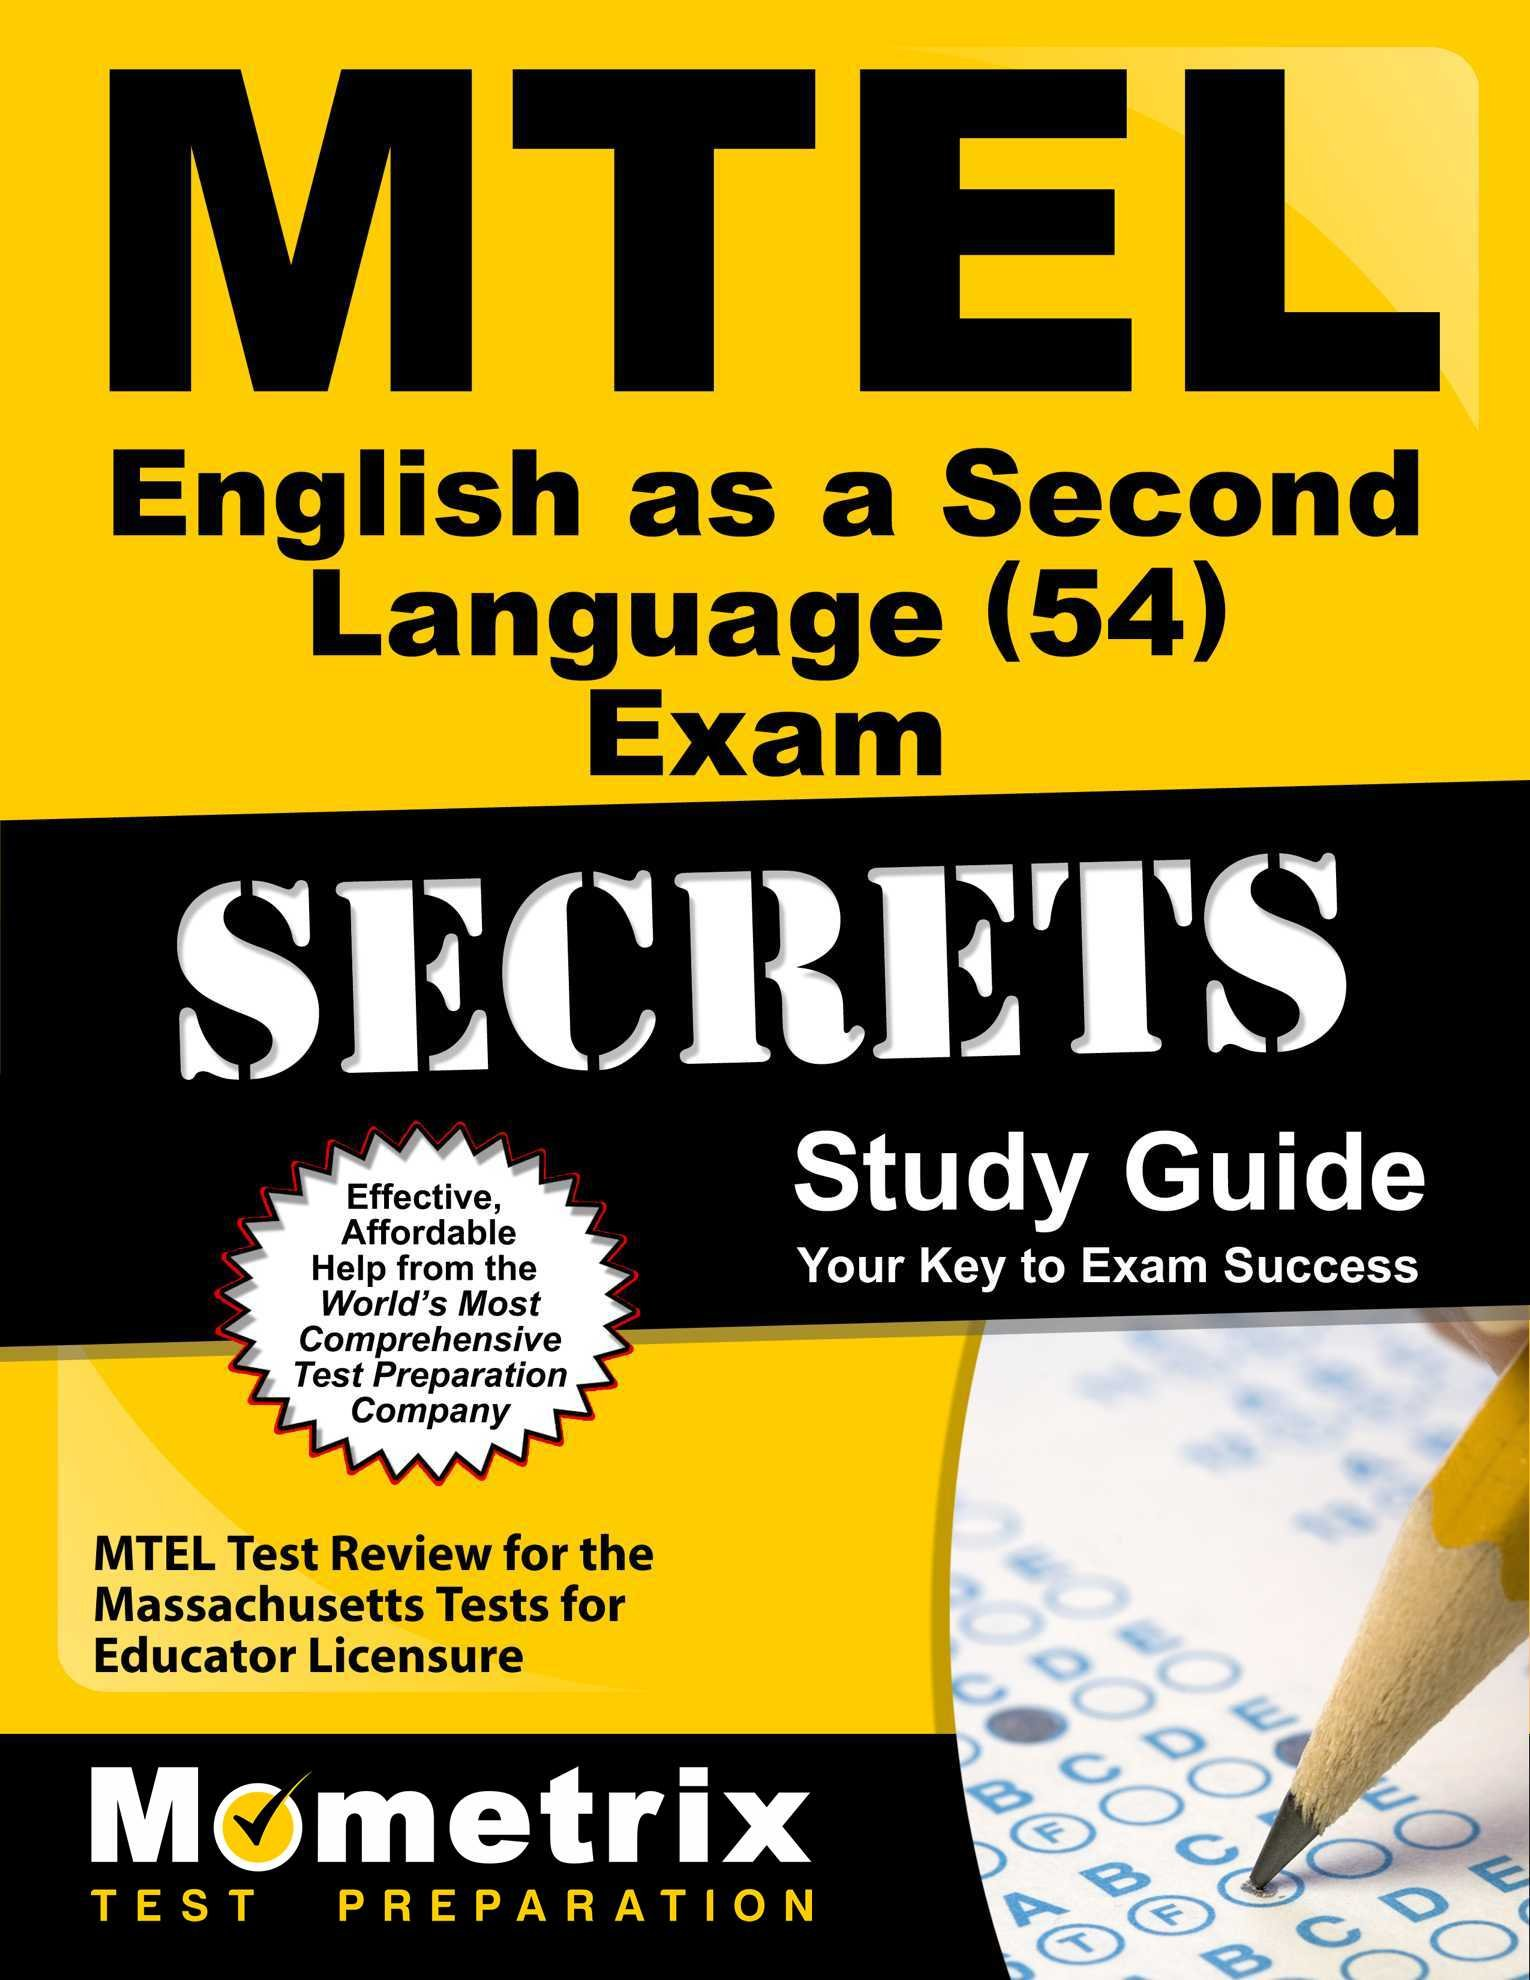 MTEL English as a Second Language (54) Exam Secrets Study Guide: MTEL Test Review for the Massachusetts Tests for Educator Licensure by Mometrix Media LLC